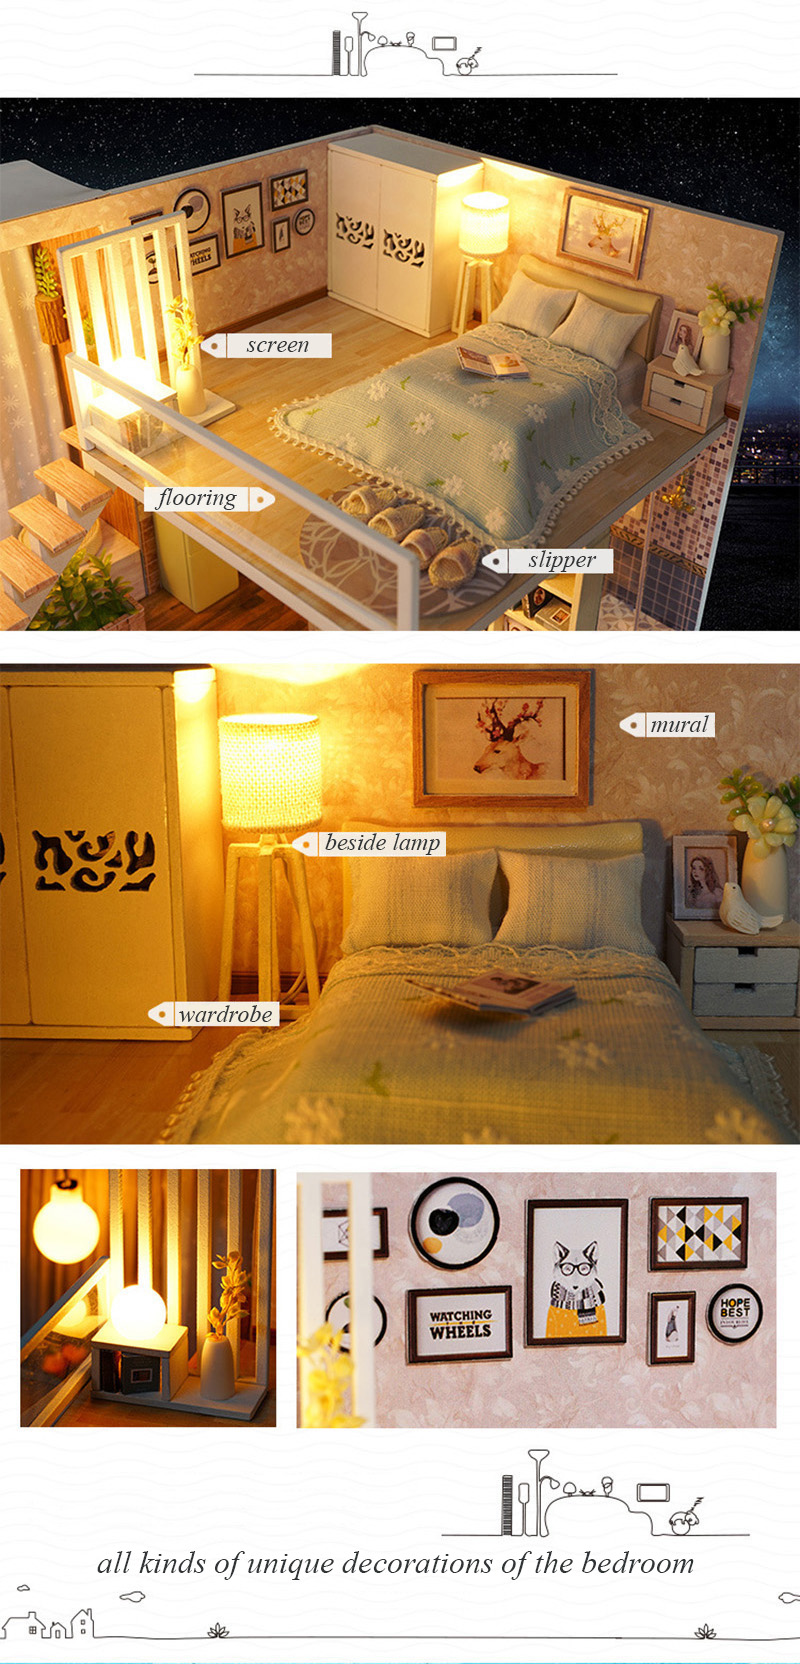 Wooden Miniature DIY Doll House Toy Assemble Kits 3D Miniature Dollhouse Toys With Furniture Lights for Birthday Gift L020 - Waiting Time (11)